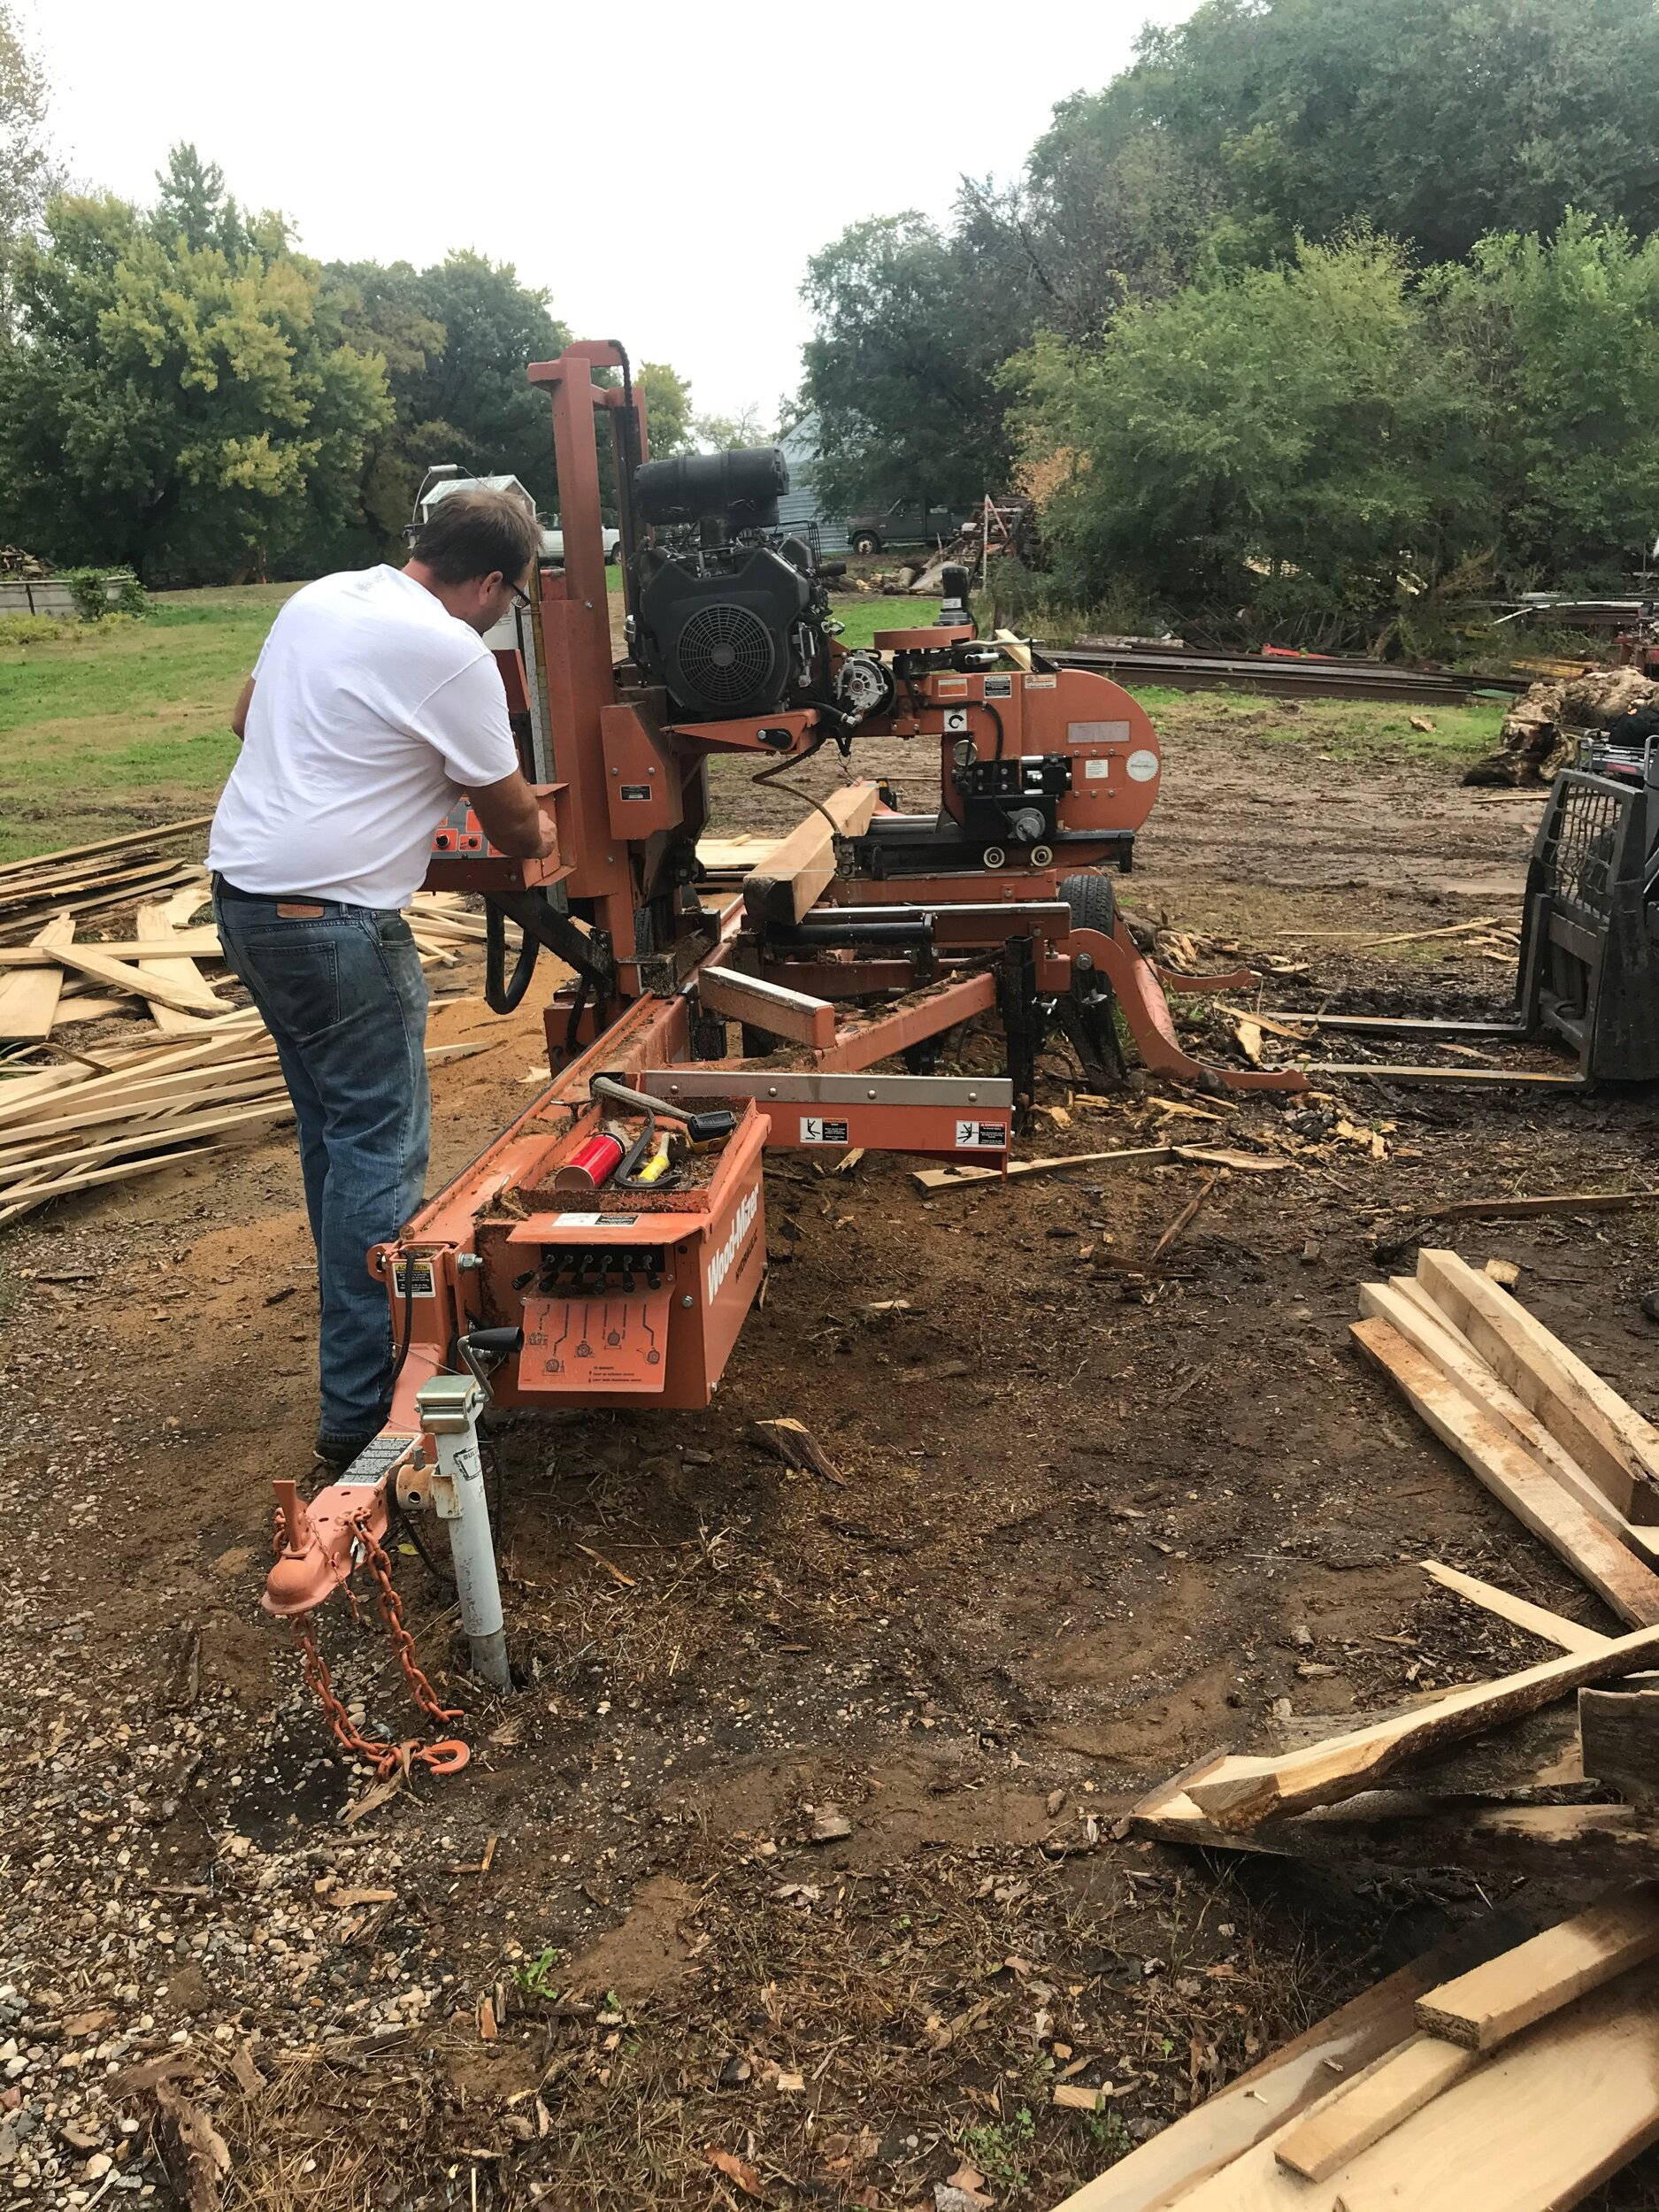 A son of the congregation milling wood for a mantle to be used for a fireplace! The wood was a free gift! And it came from the land of a family the recipient has known for years. Black walnut! What a blessing. It will bless the home of the recipient for many years.